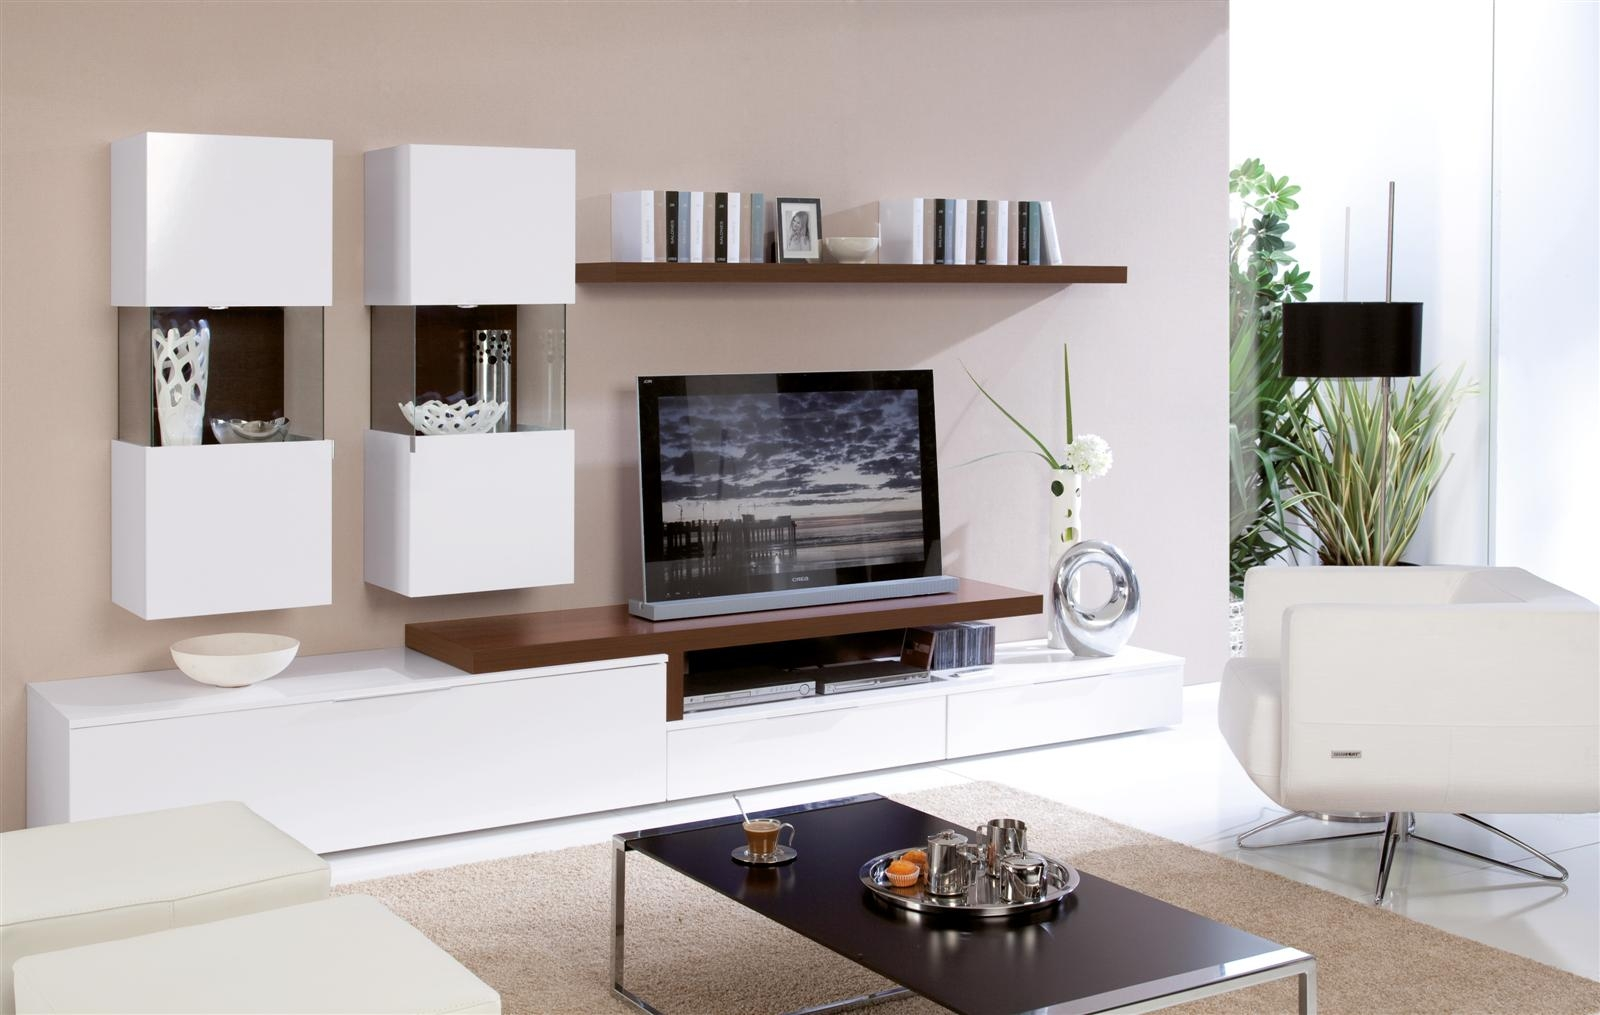 Tv unit design ideas living room | Hawk Haven